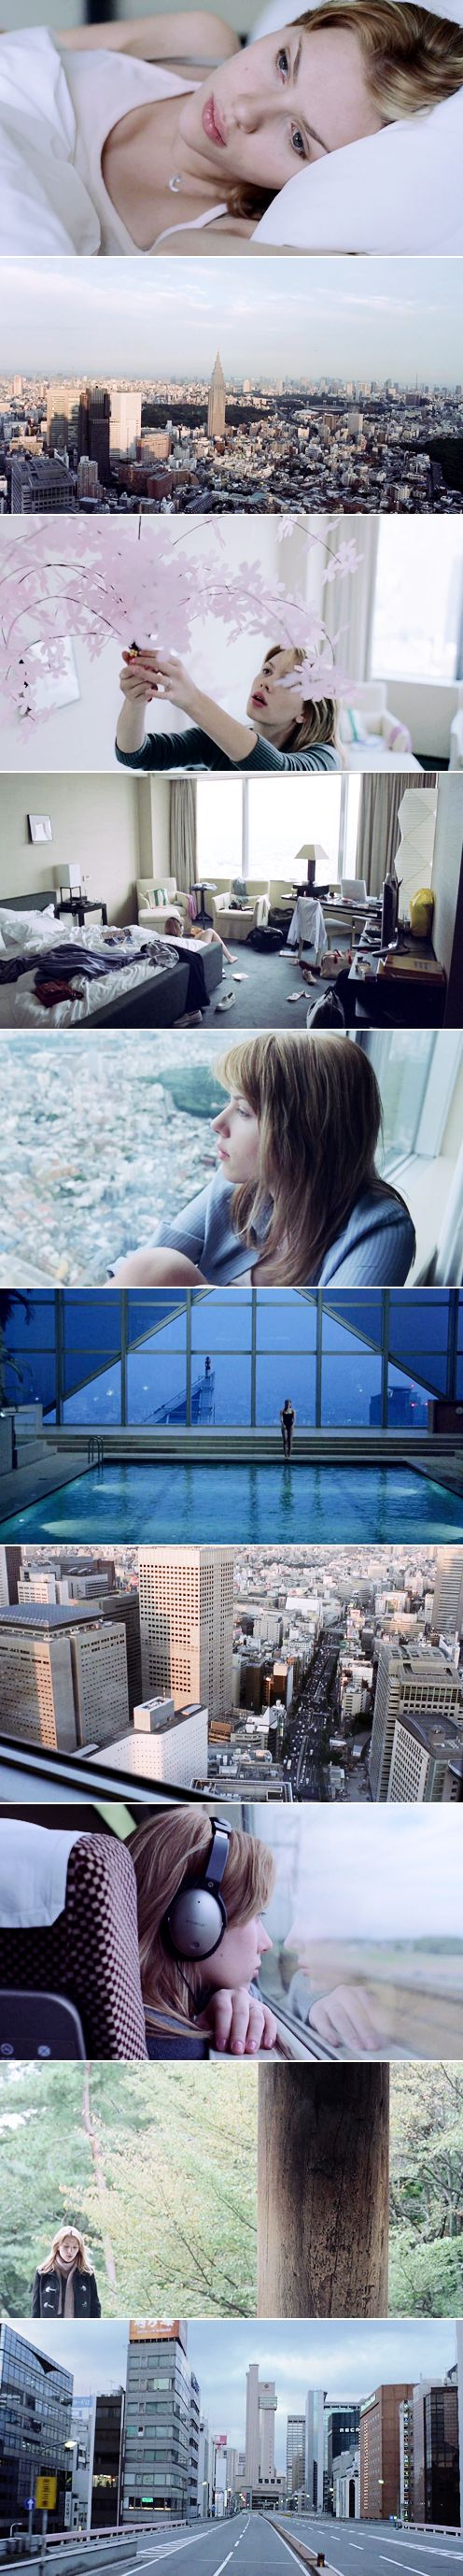 Lost in Translation (2003), dir. Sofia Coppola. Such a sweet, gentle, film. Totally understated.